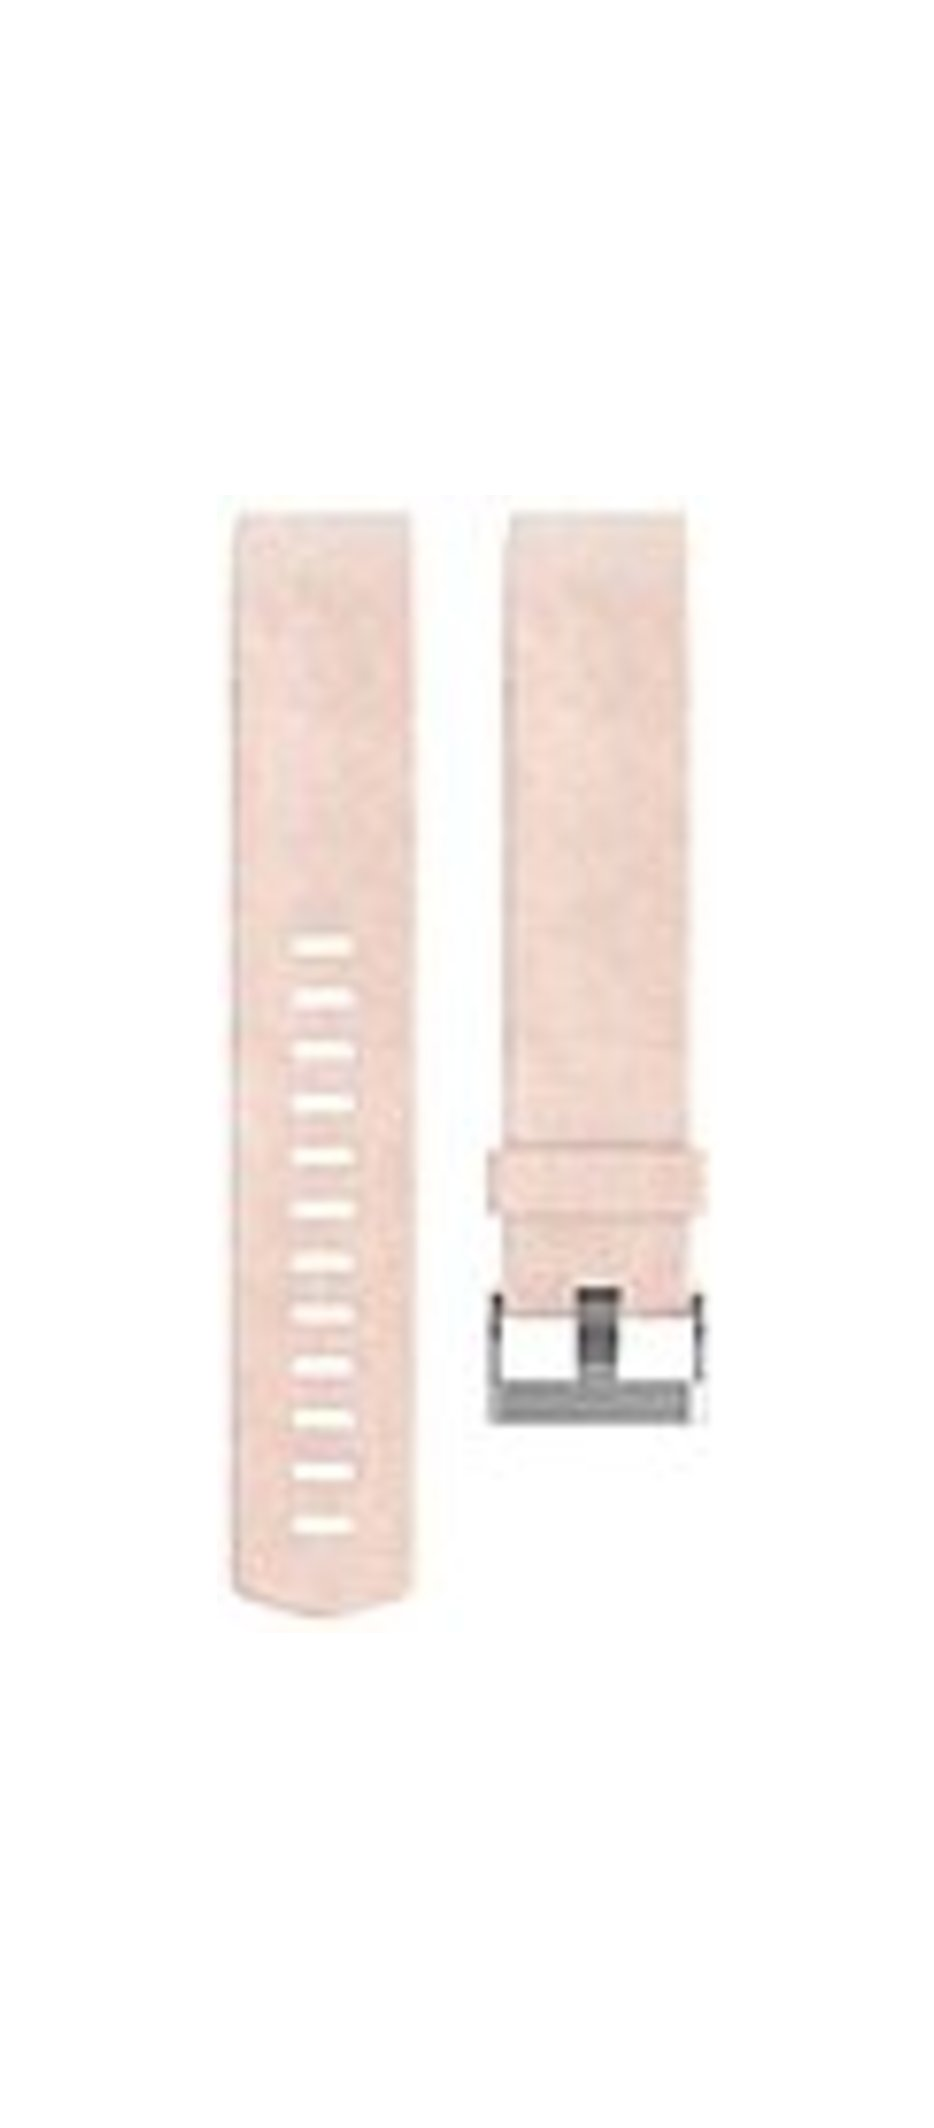 Fitbit Smartwatch Band - Pink - Leather